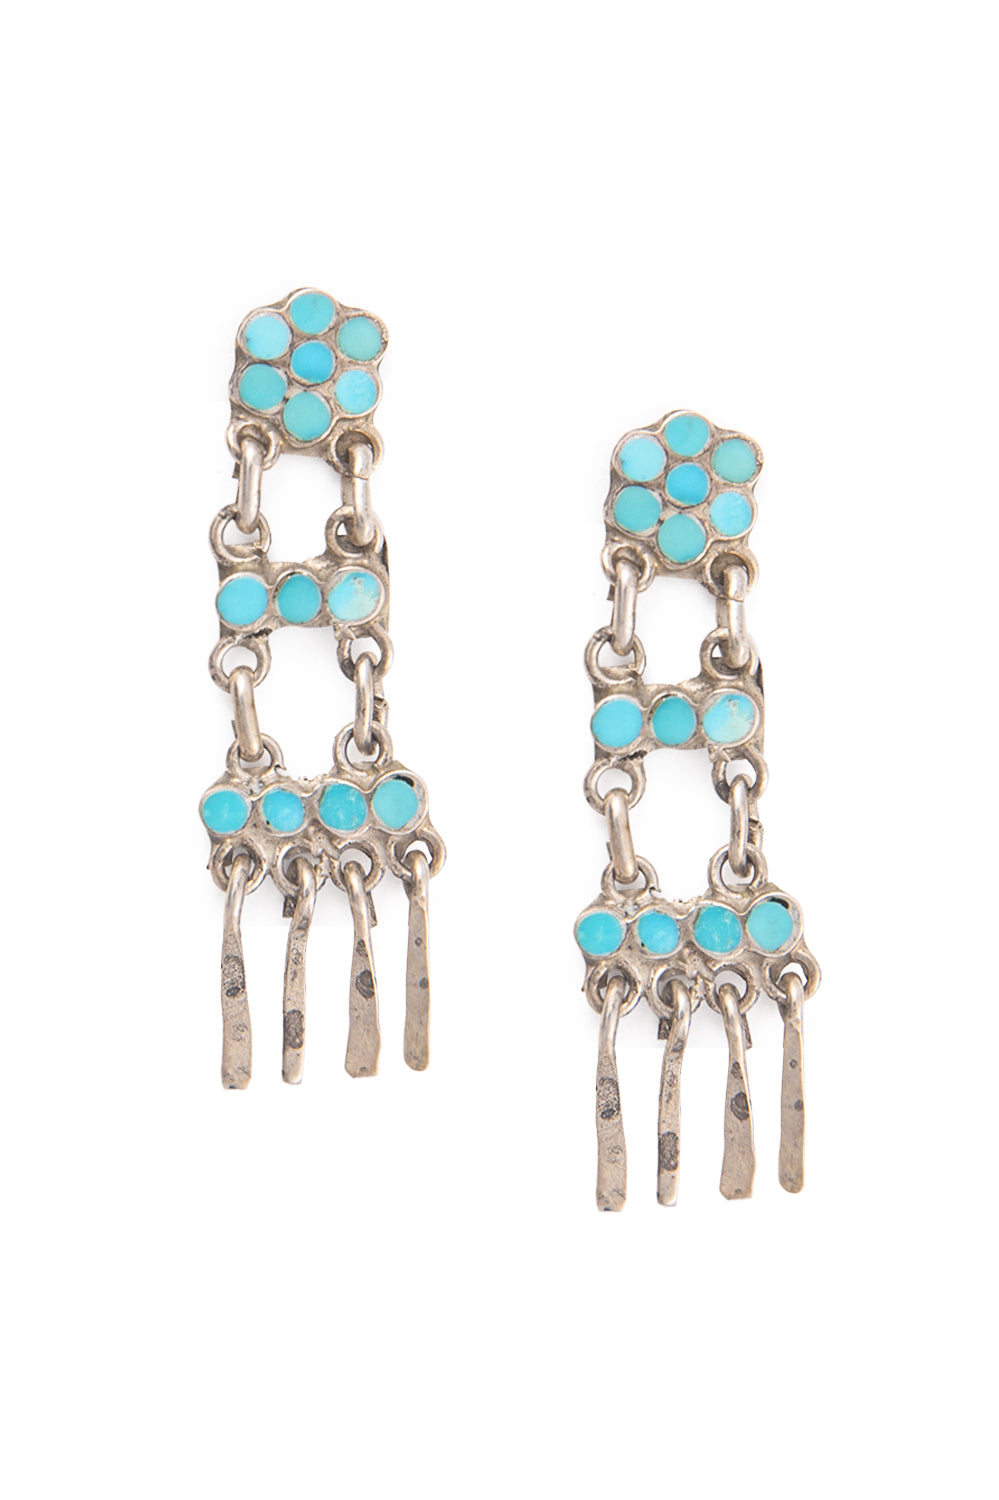 Earrings, Chandelier, Ladder, Turquoise, Dishta Style, Vintage, 485